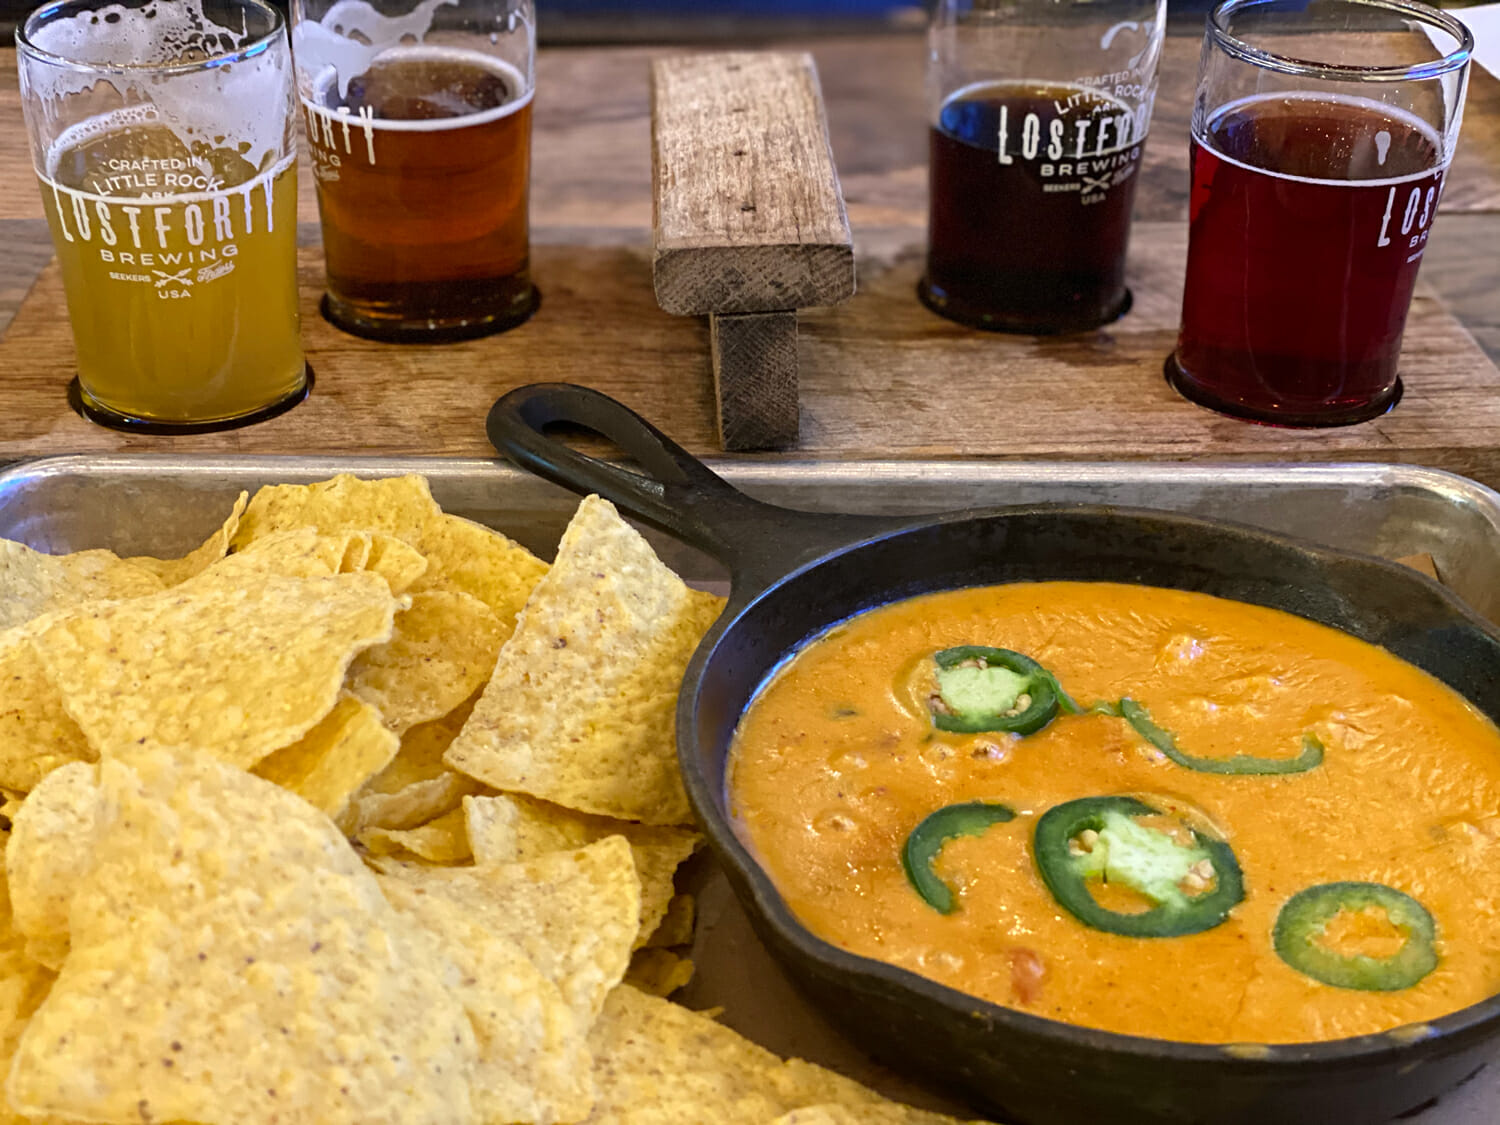 Cheese dip in an iron skillet with chips. There is beer in the background.